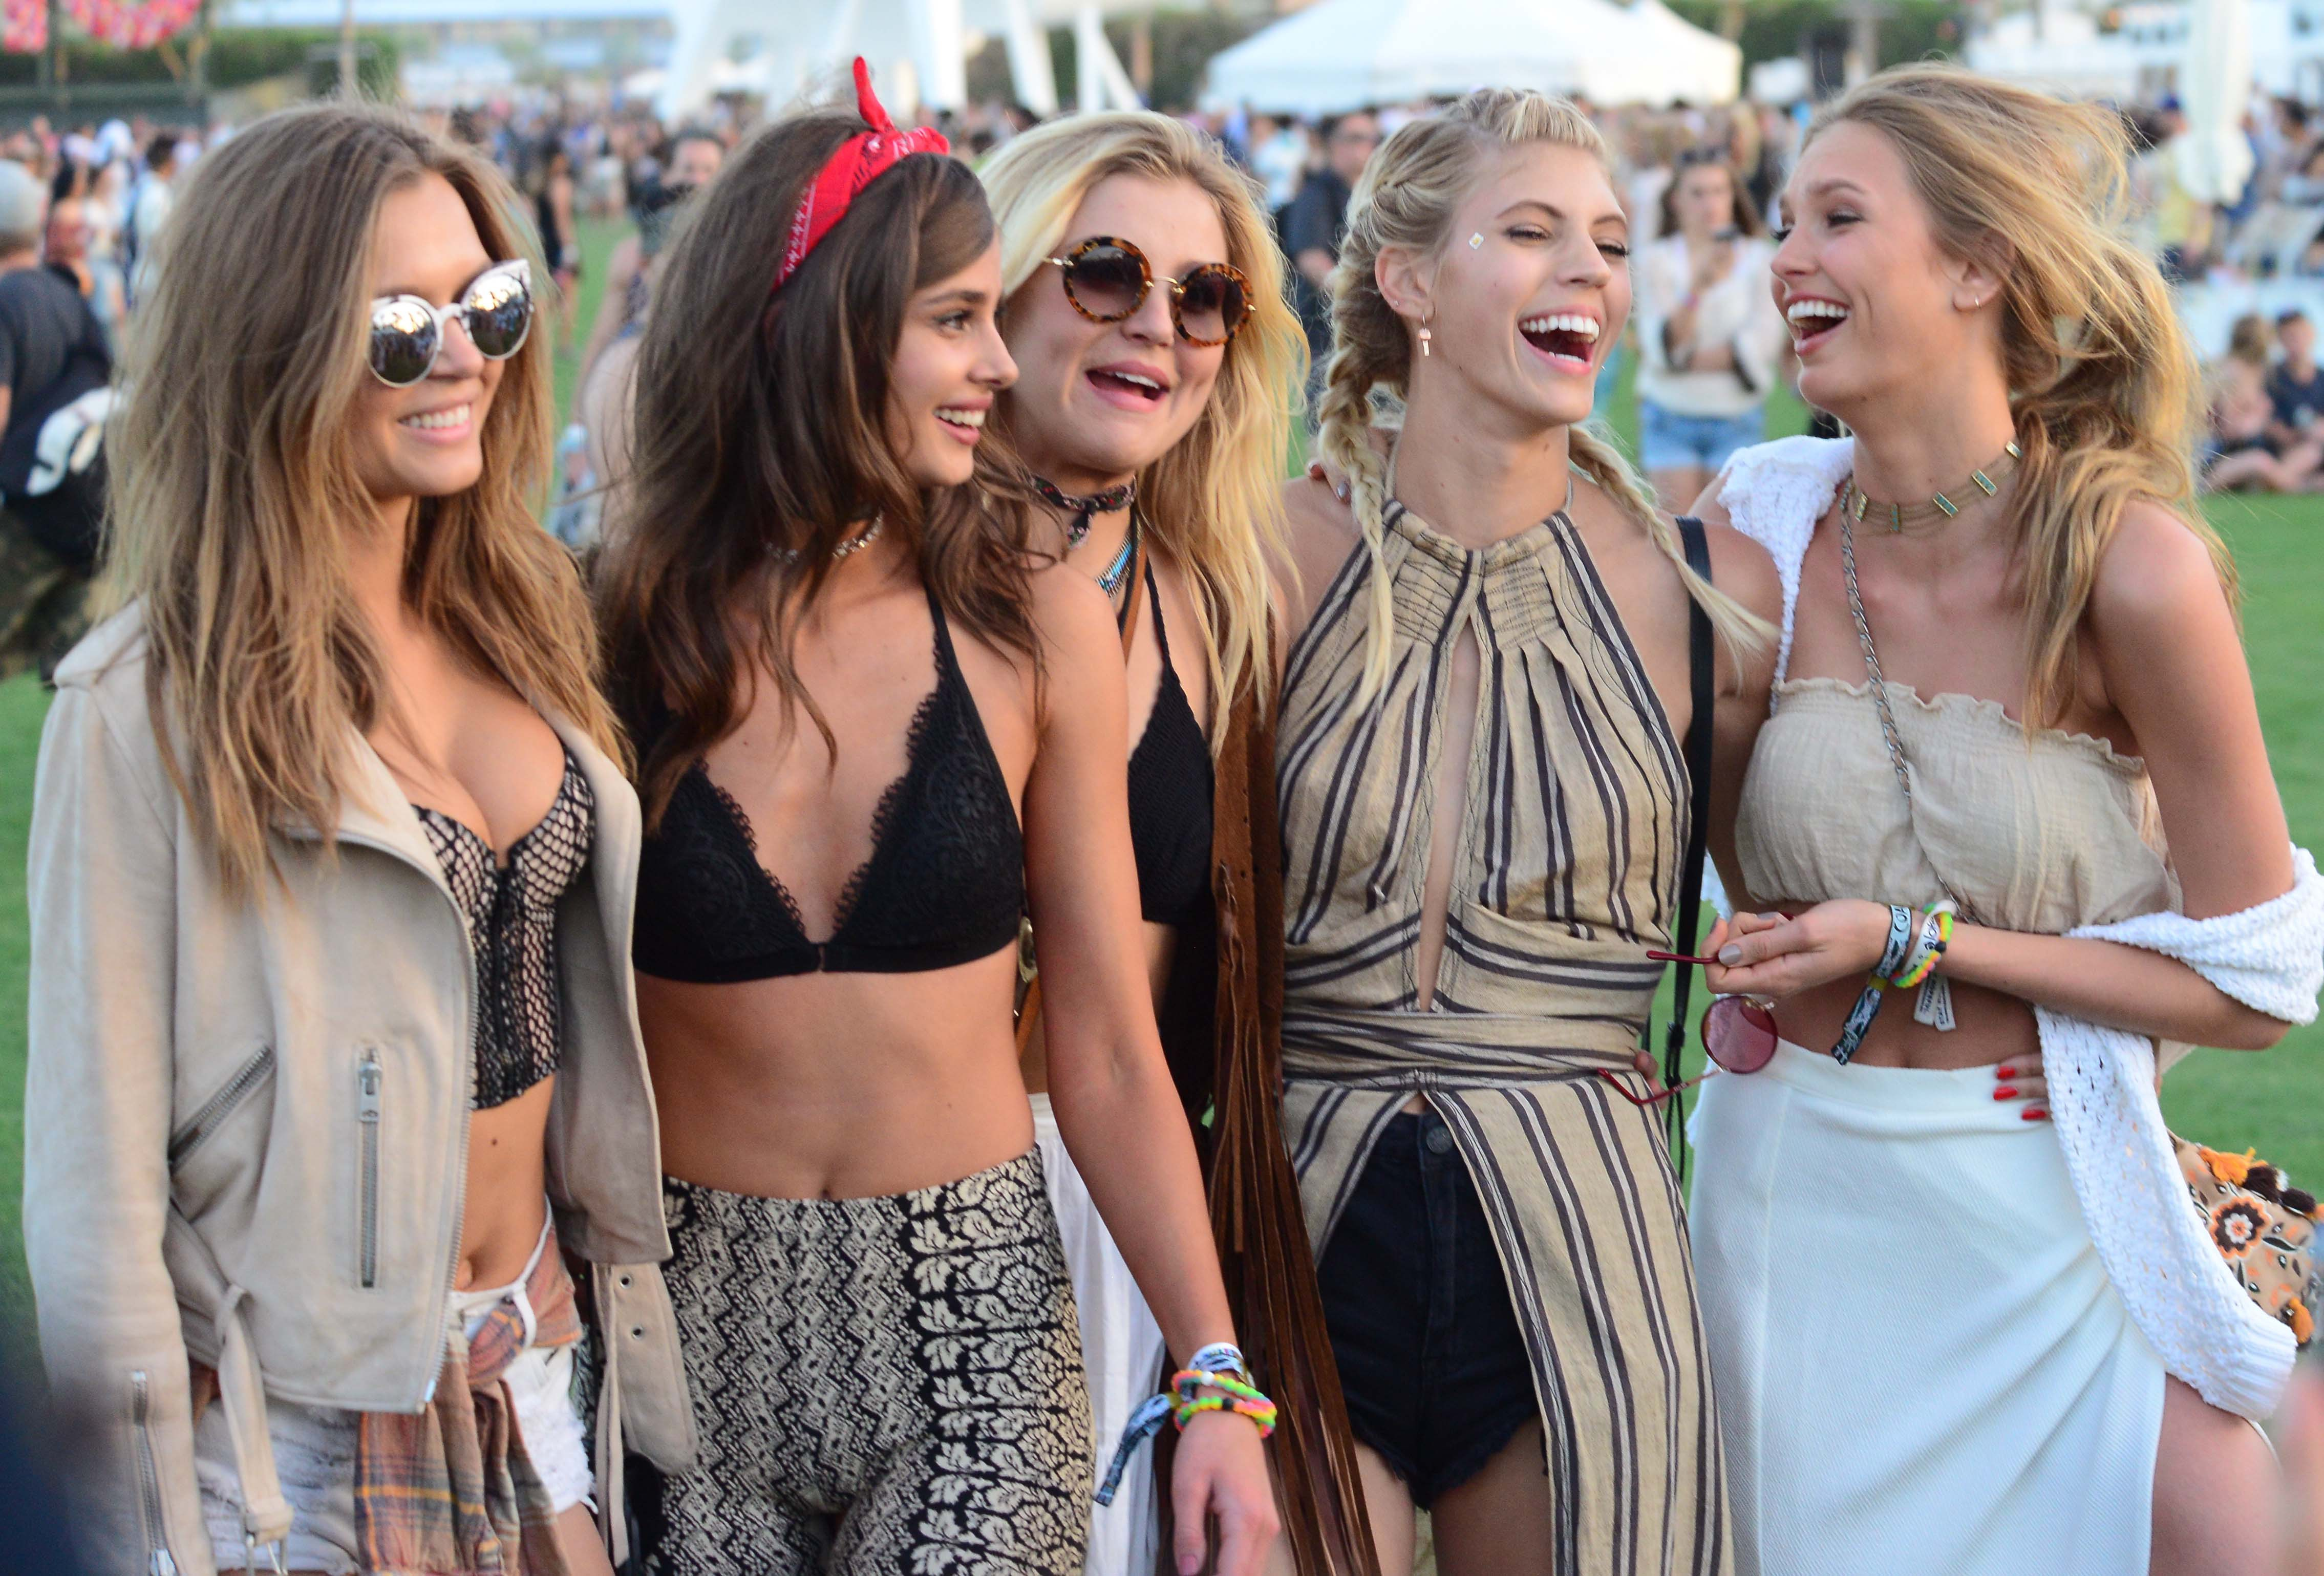 Victorias Secret Angels pose for selfies on day 1 of the Coachella Music Festival in Indio, Ca